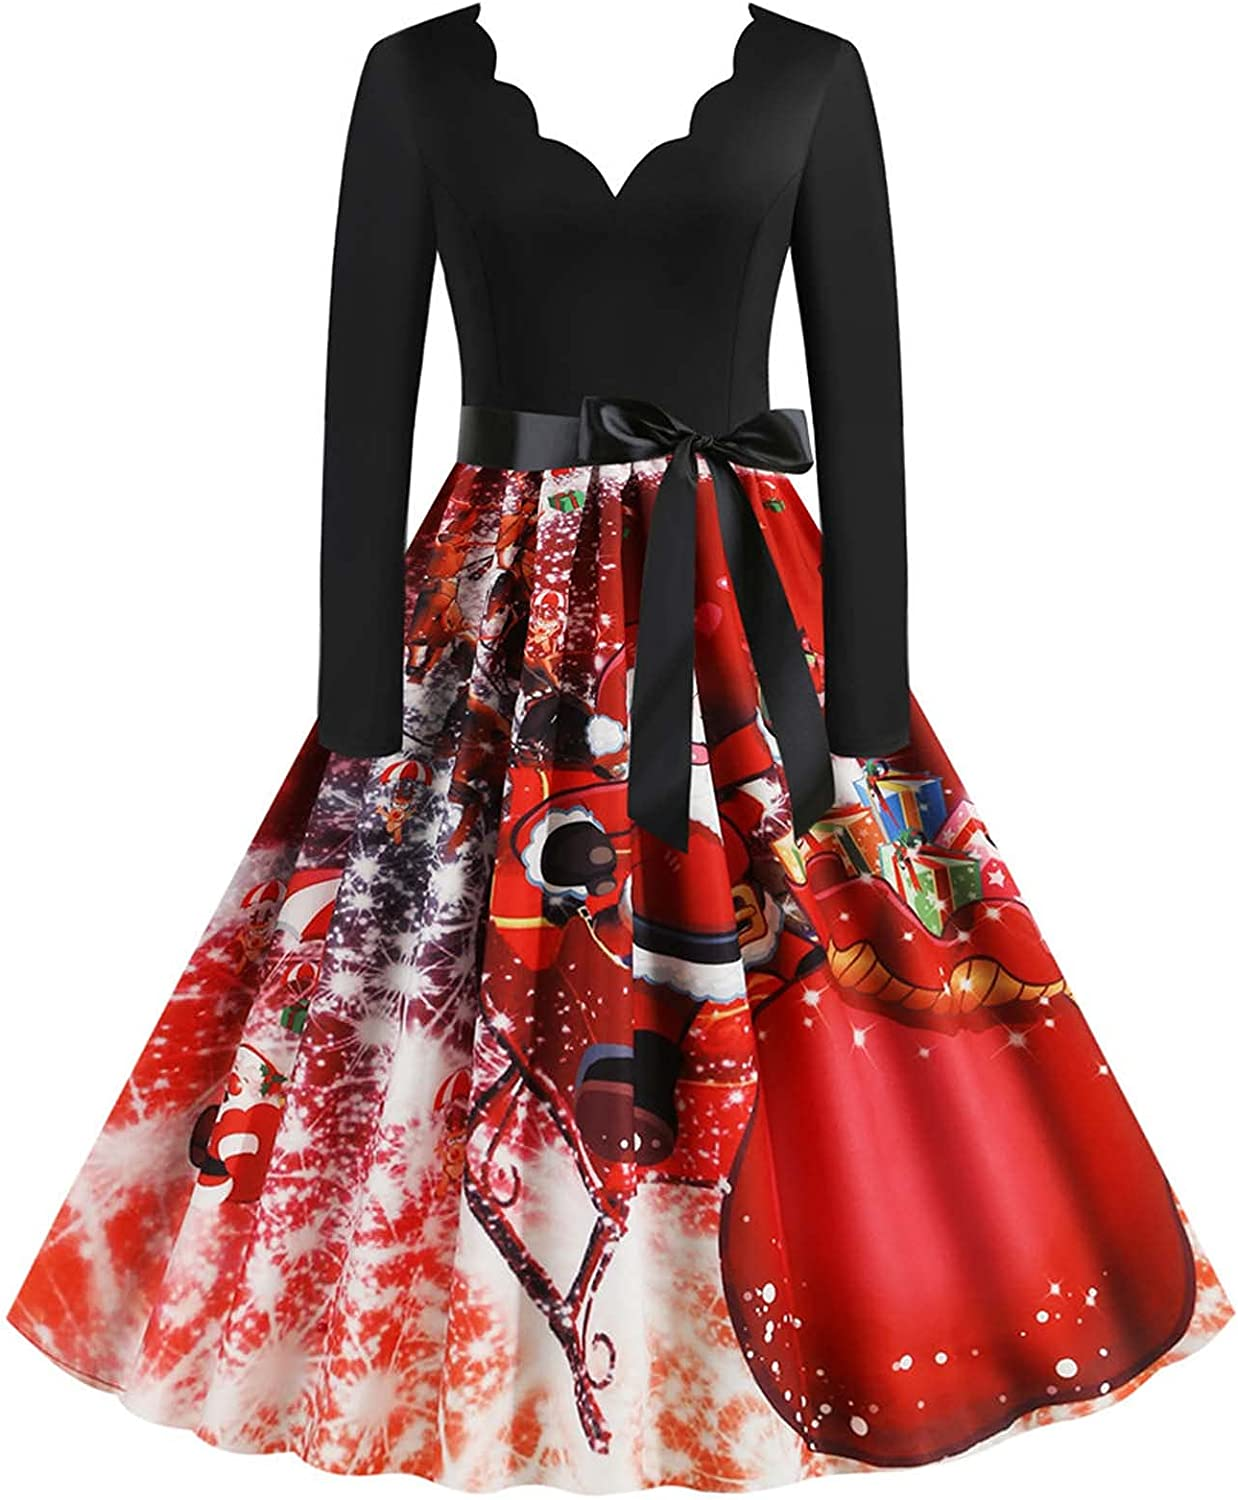 CofeeMO Womens V Neck Long Sleeve Christmas Maxi Dress Sexy Party Printed Cocktail Vintage Patchwork with Belt 33